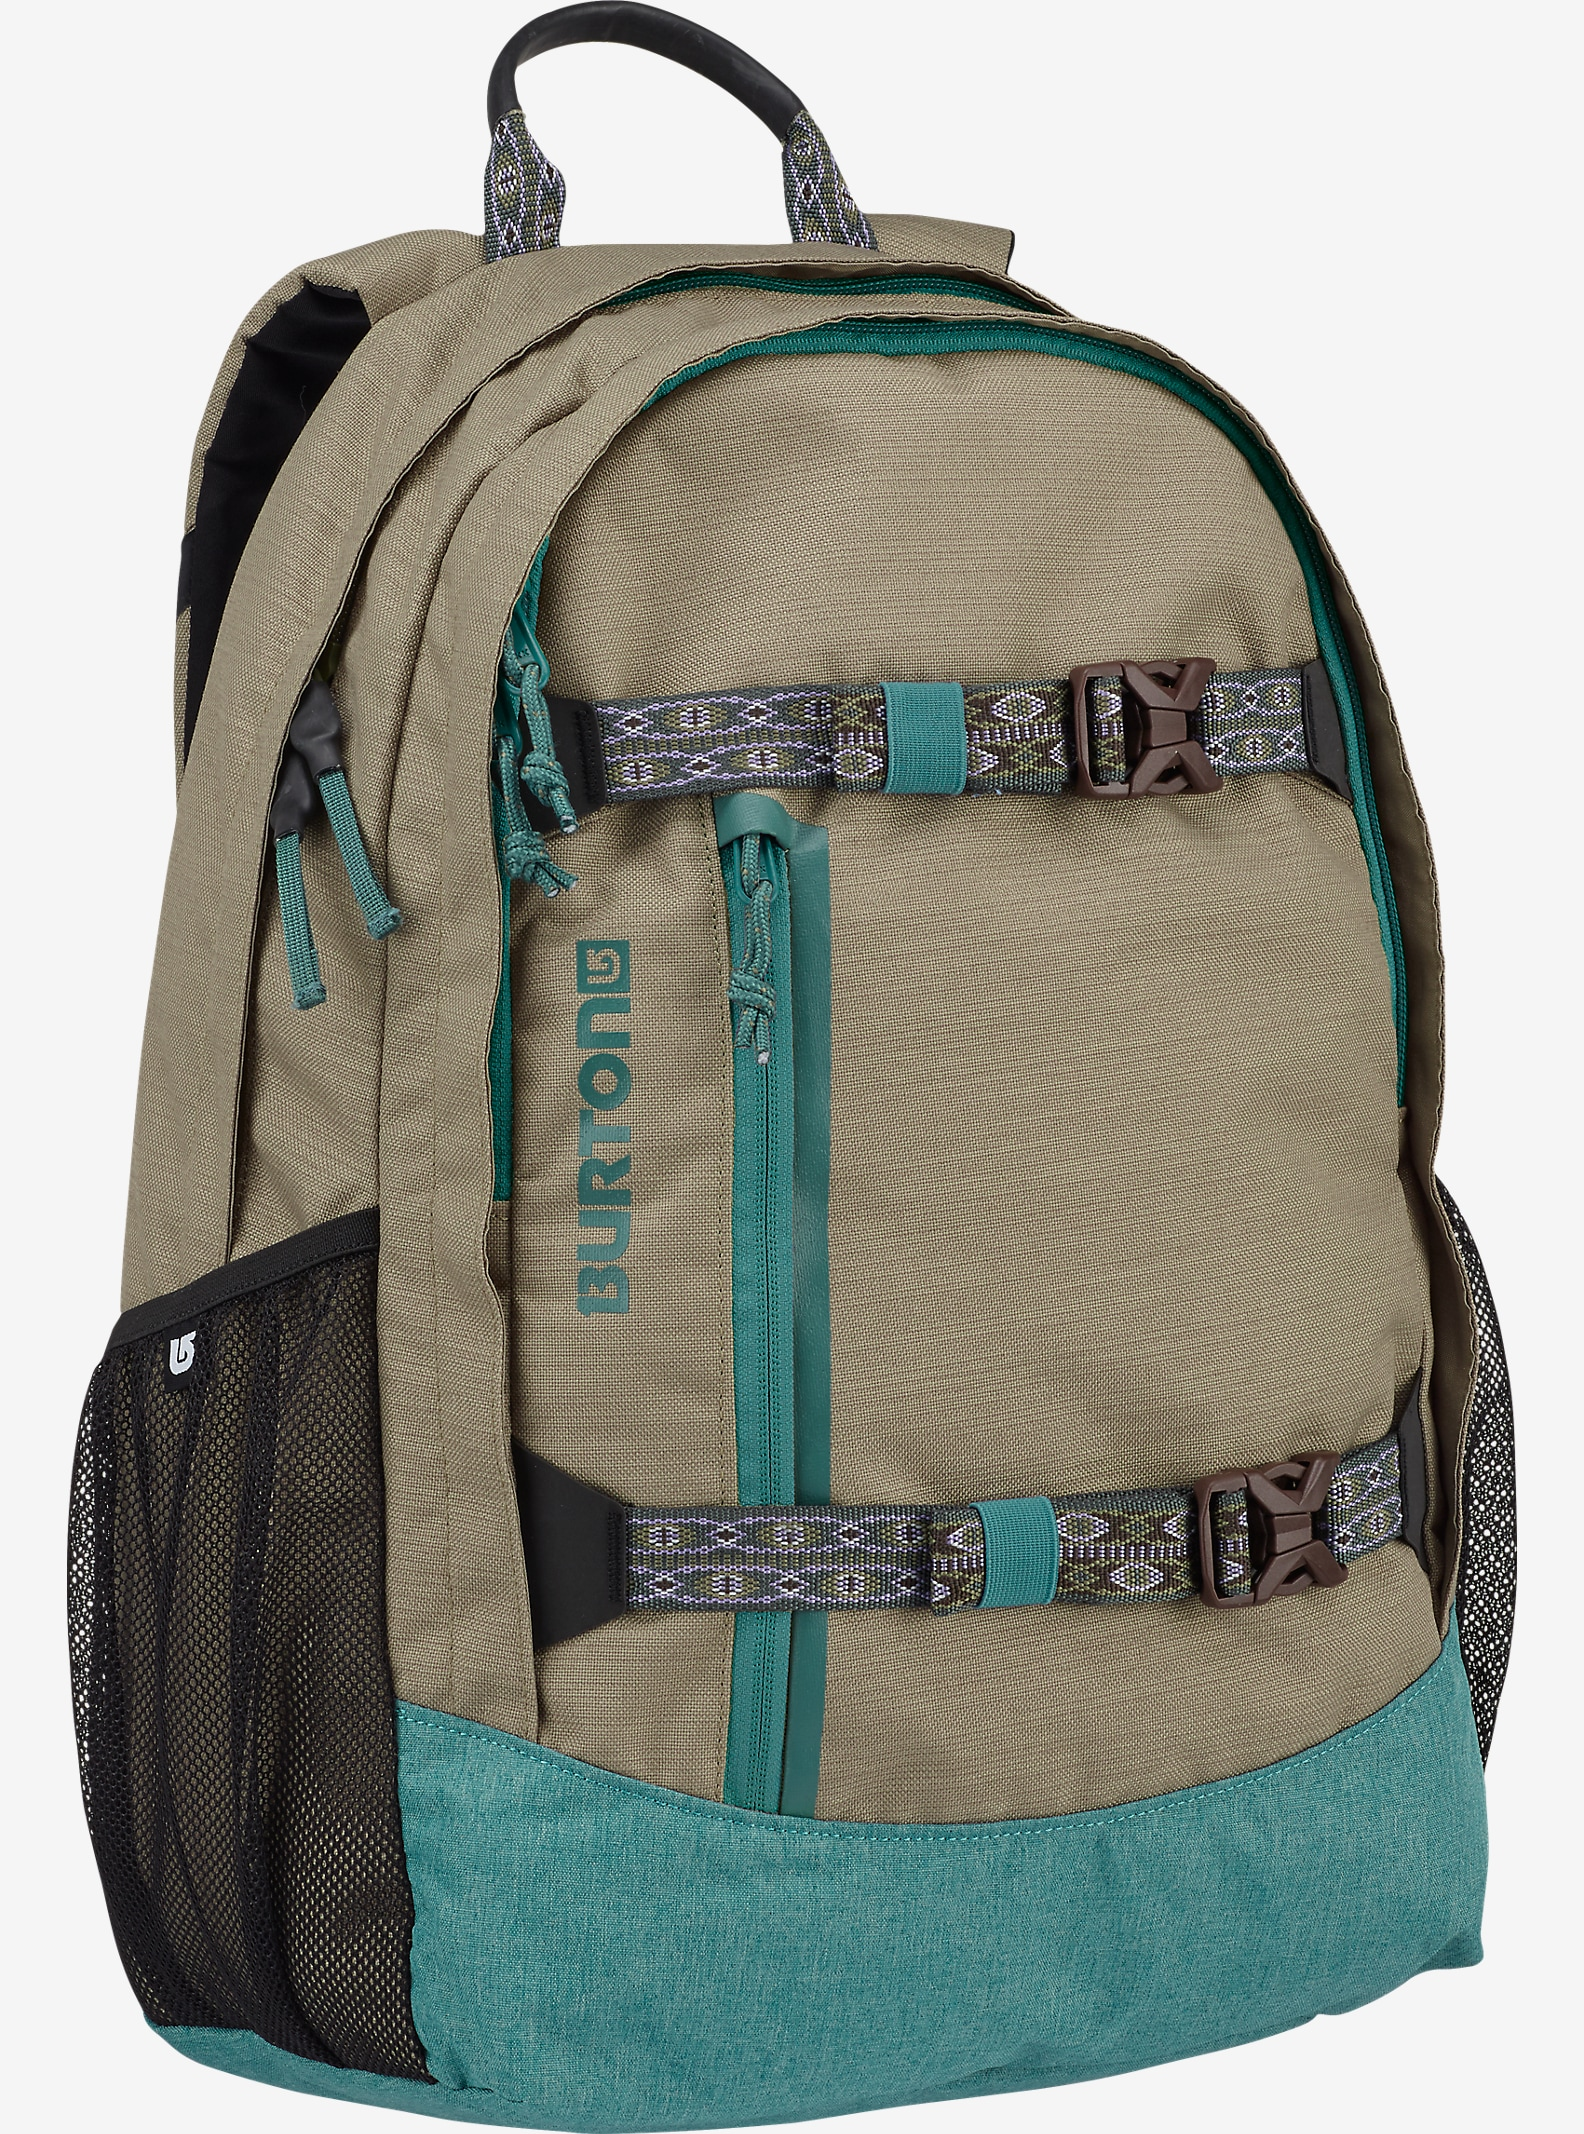 Burton Women's Day Hiker 23L Backpack shown in Rucksack Slub